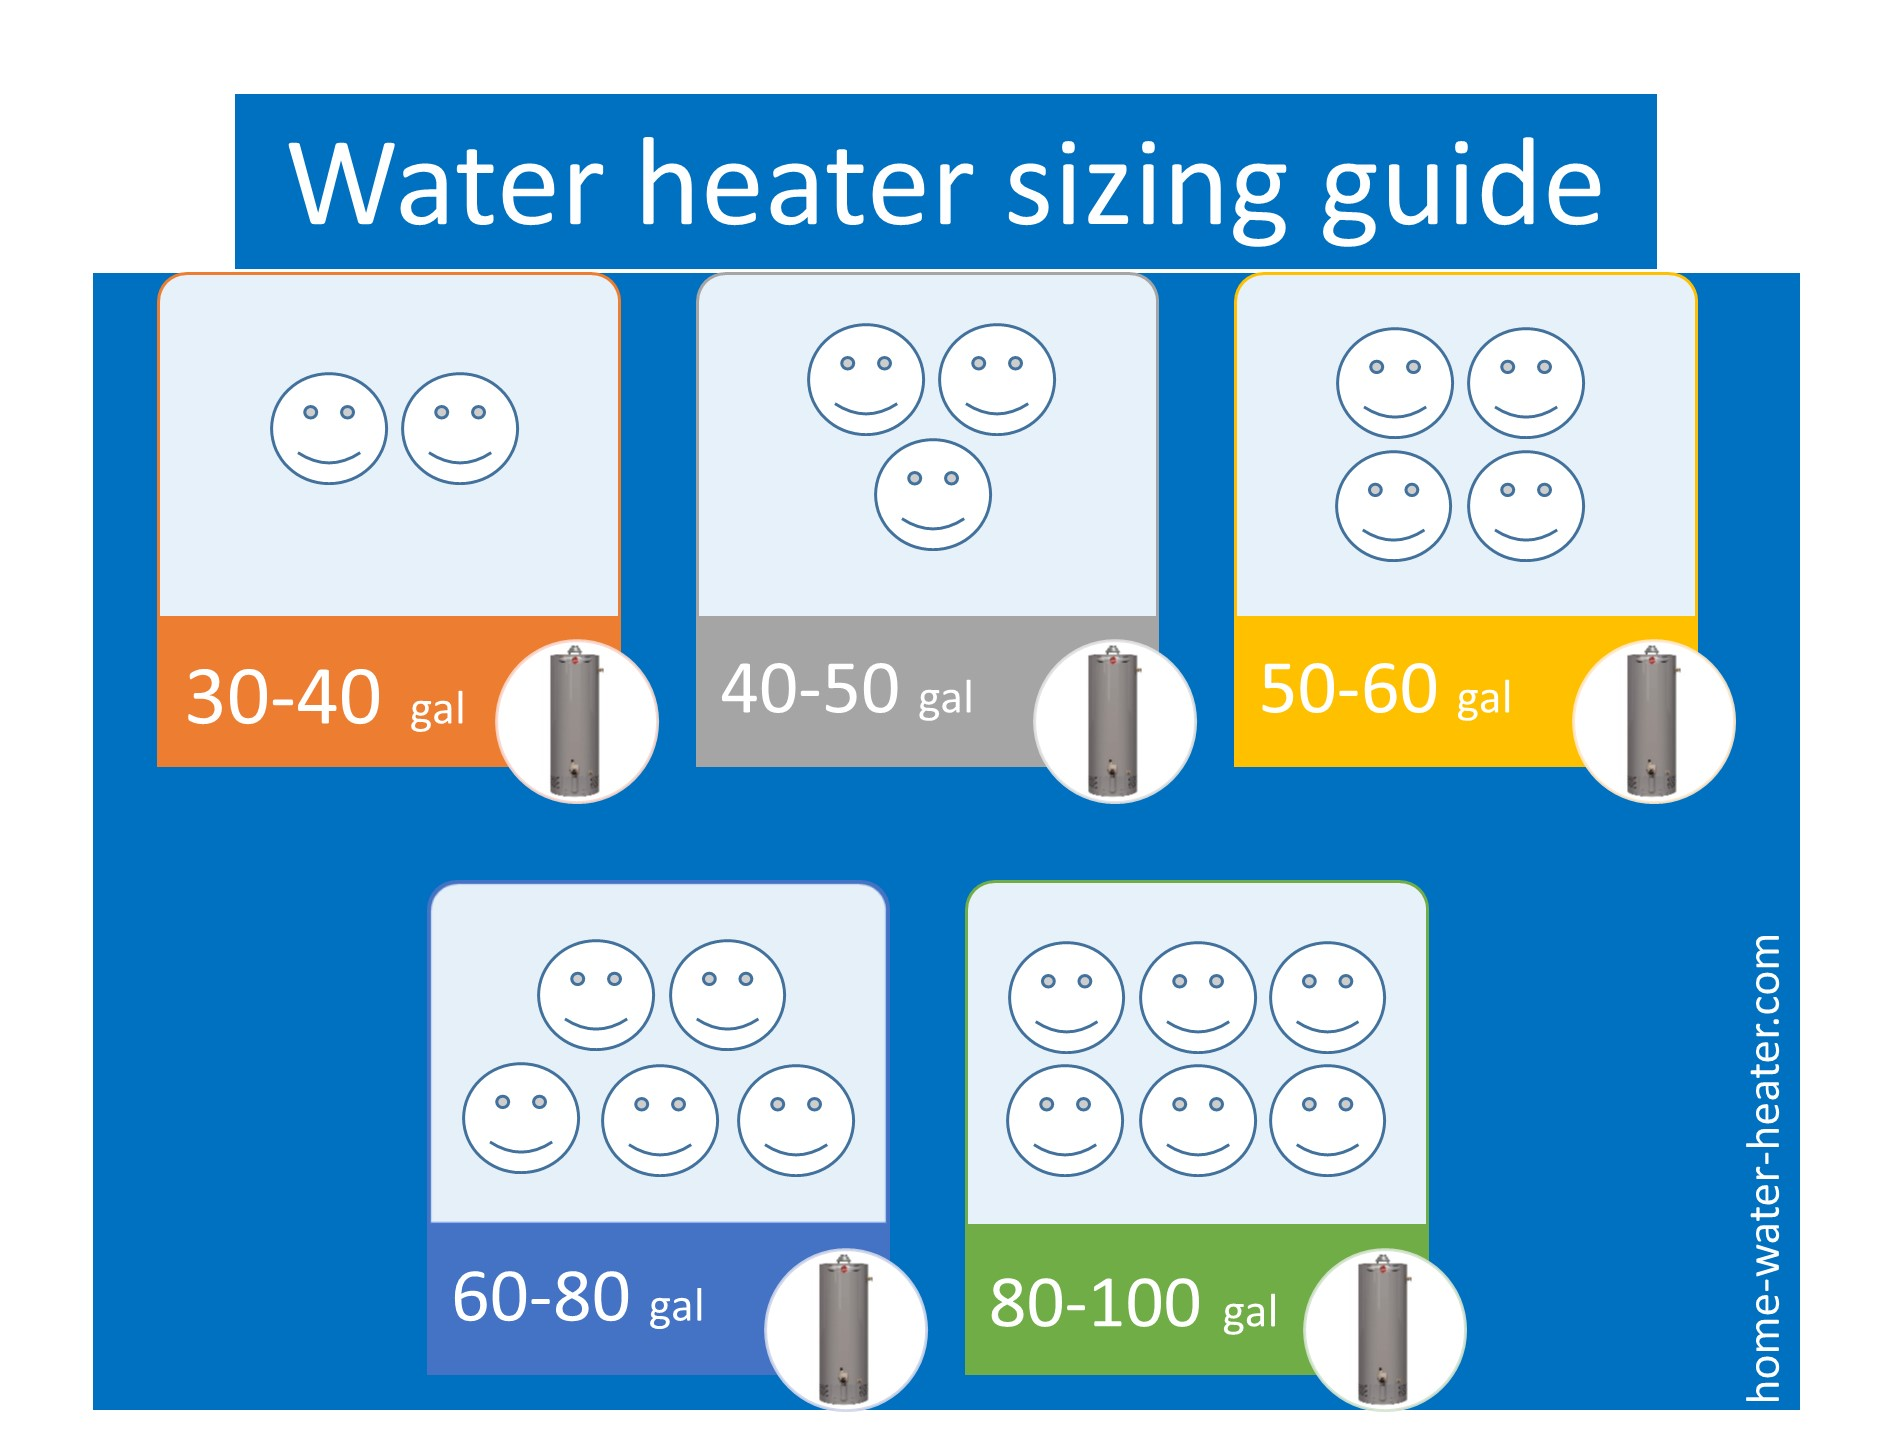 Water heater sizing guide